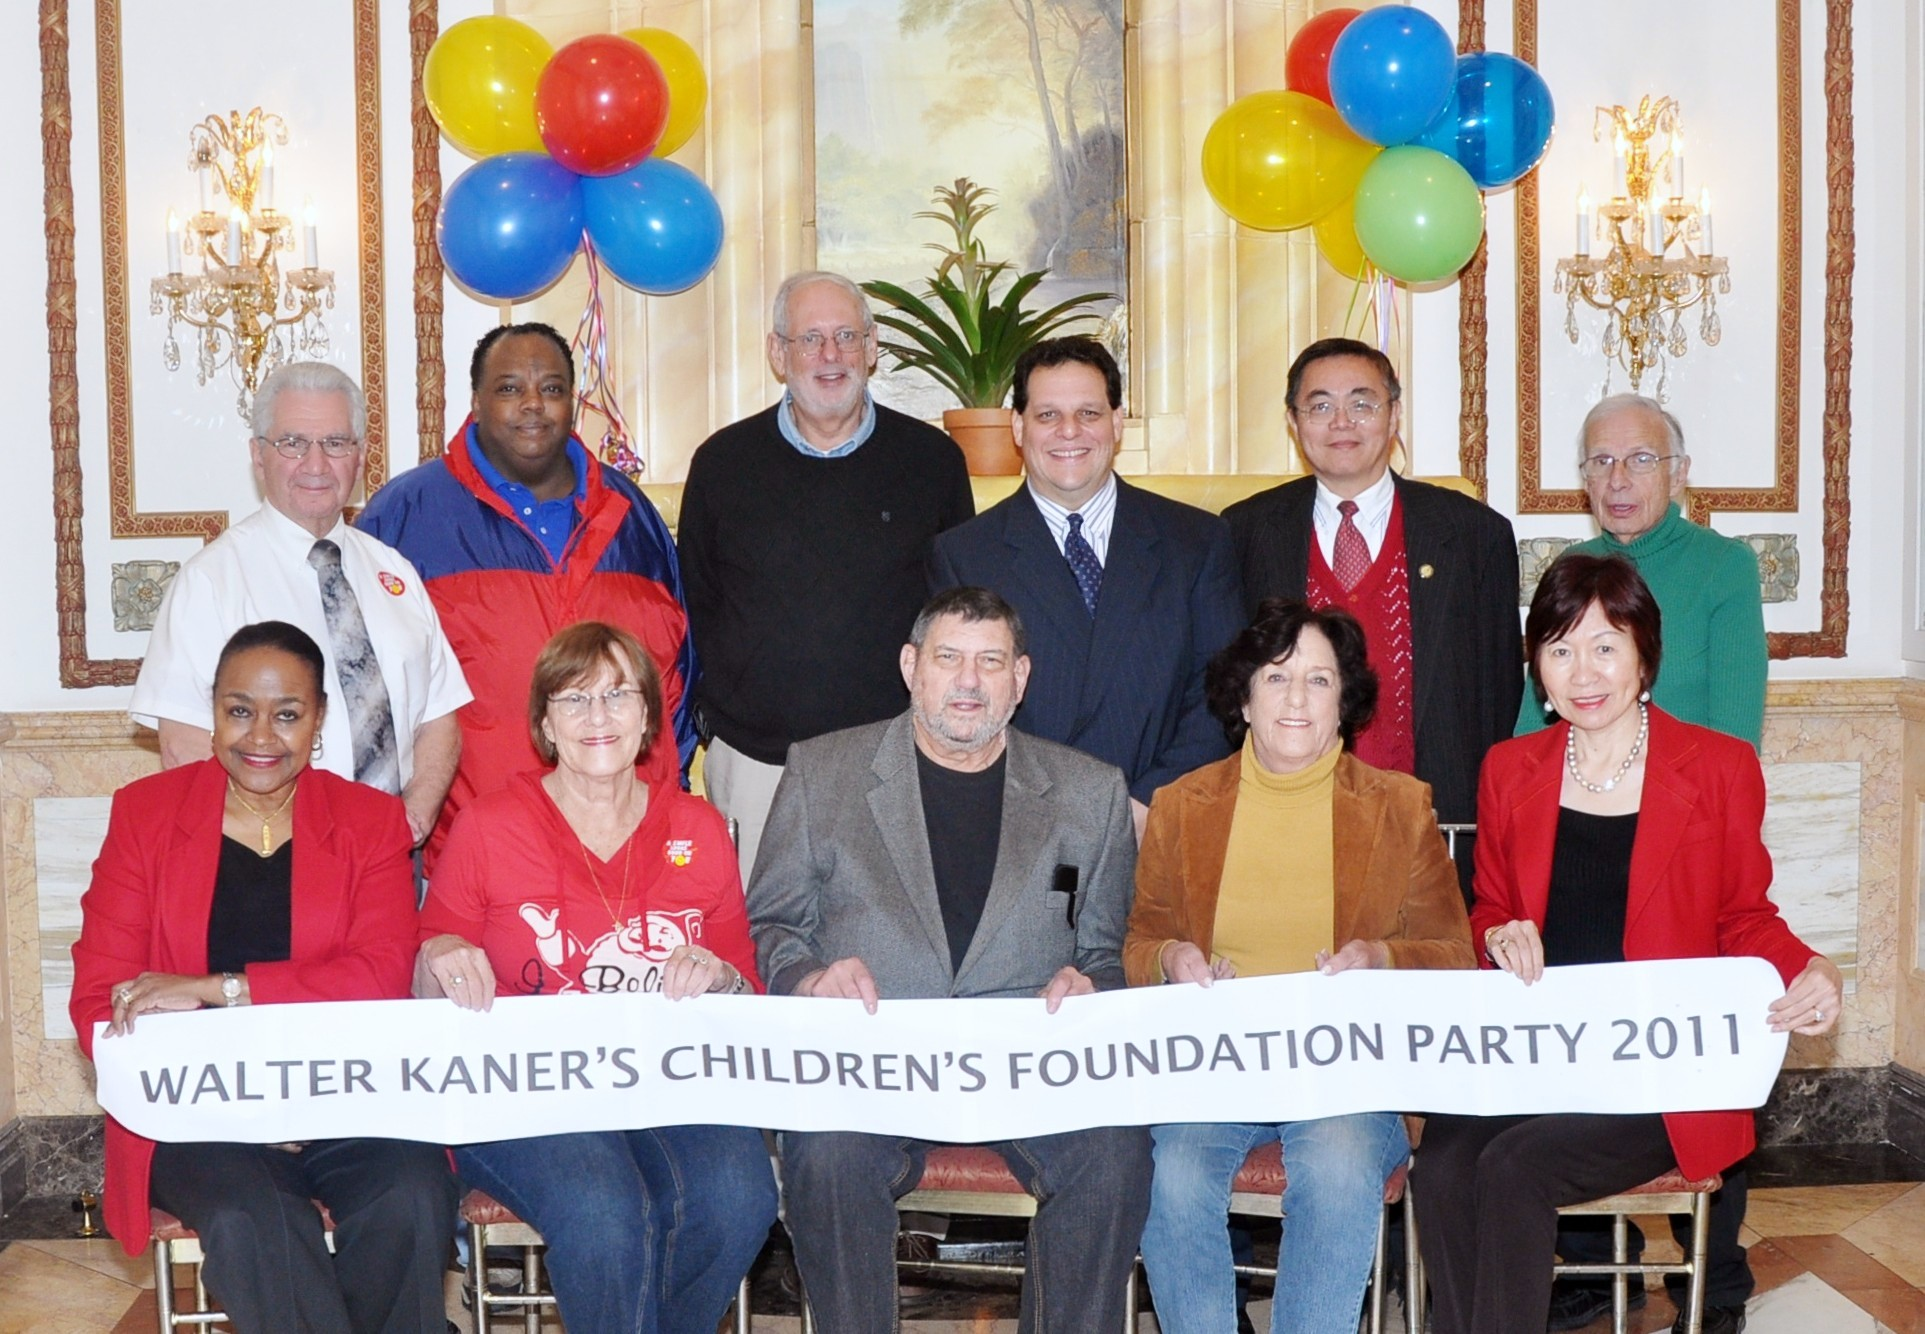 Walter Kaner Children's Foundation staff